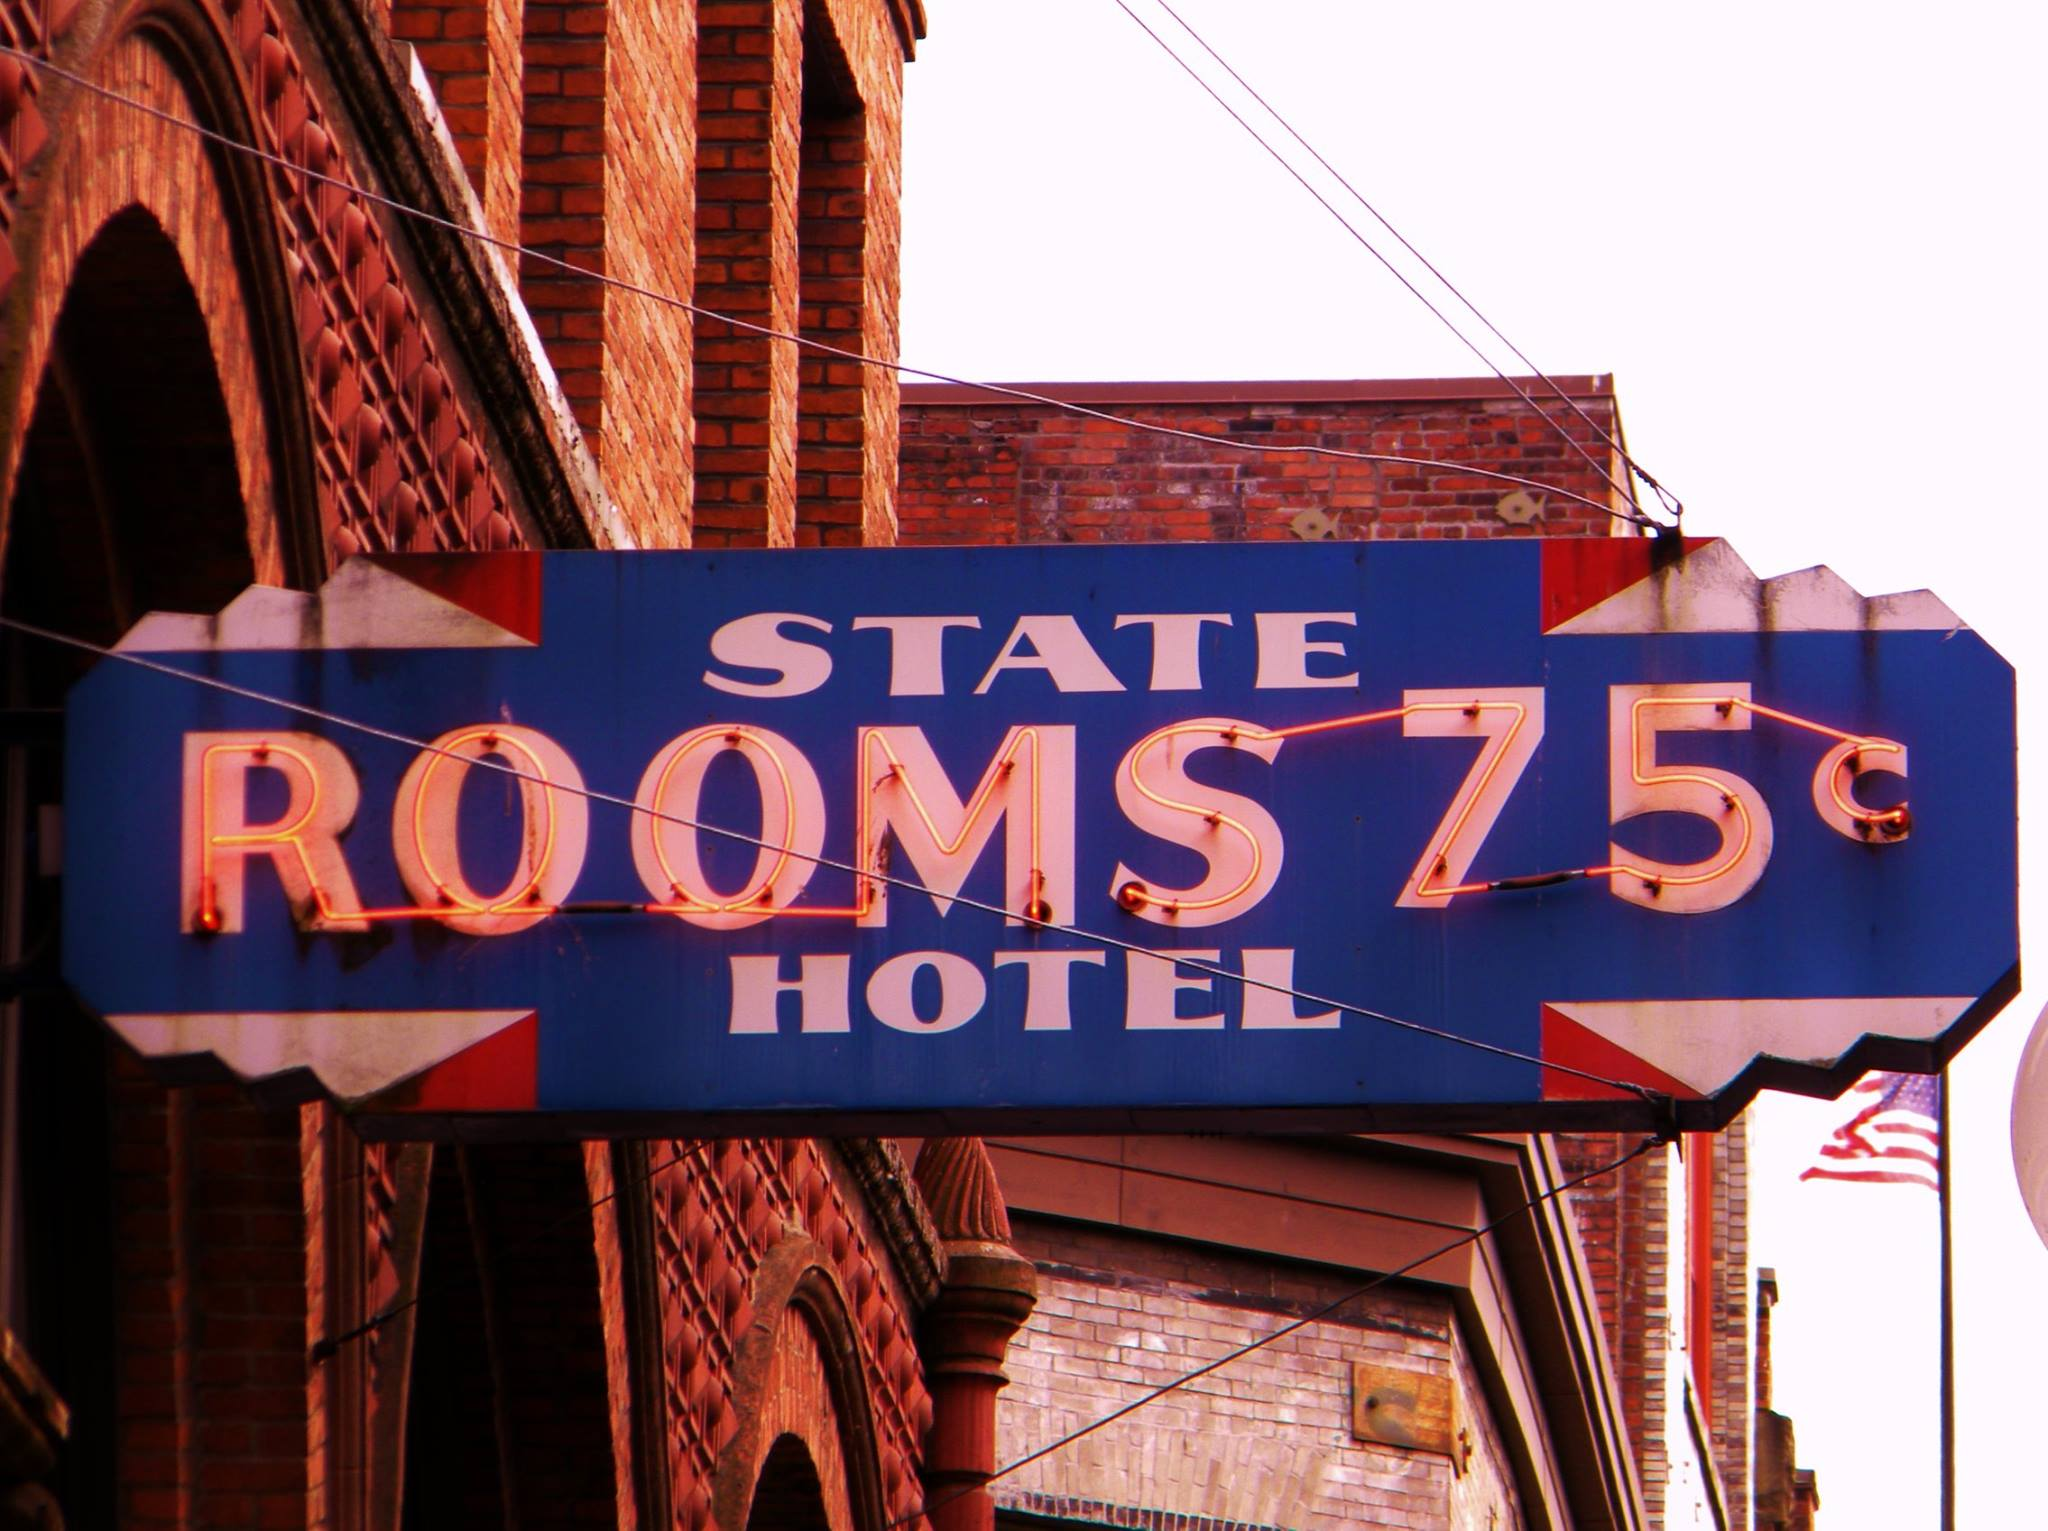 With 75 cent hotel rooms, politicians can spend a hell of a lot more on prostitutes.